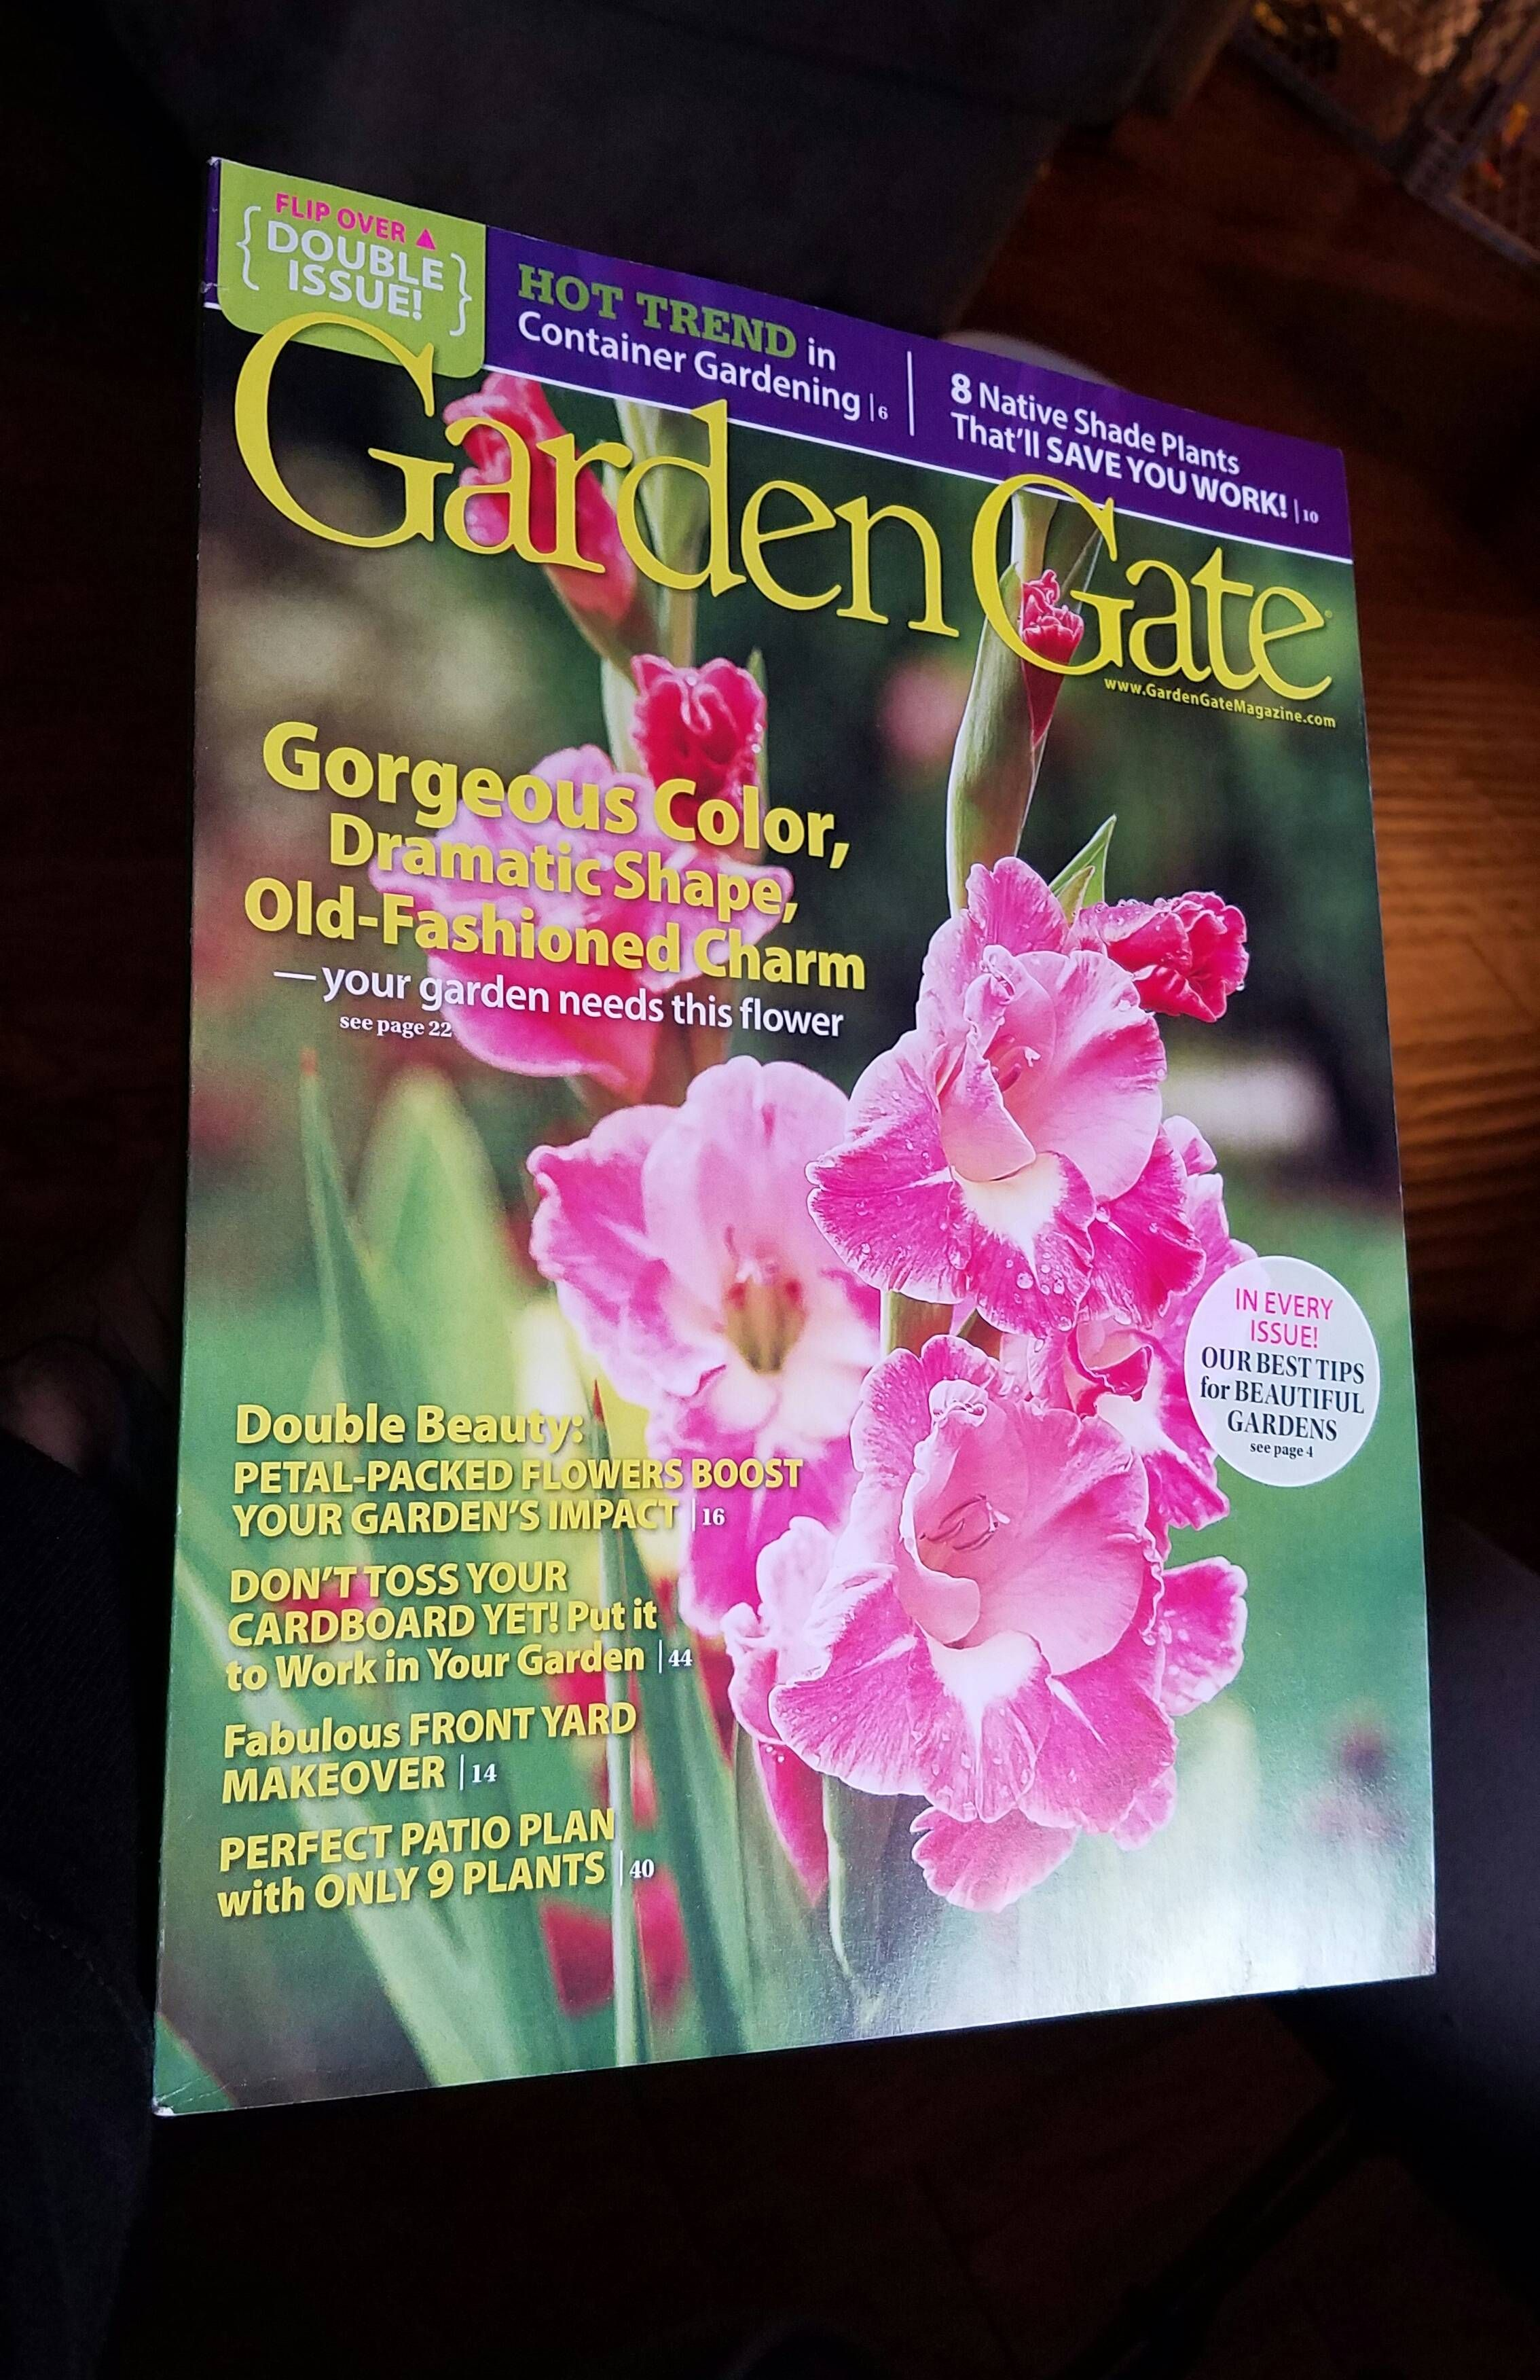 Found this magazine at Costco today. It has some very nice photography and garden ideas. Is there any others you guys recommend that might be worth buying? #gardening #garden #DIY #home #flowers #roses #nature #landscaping #horticulture